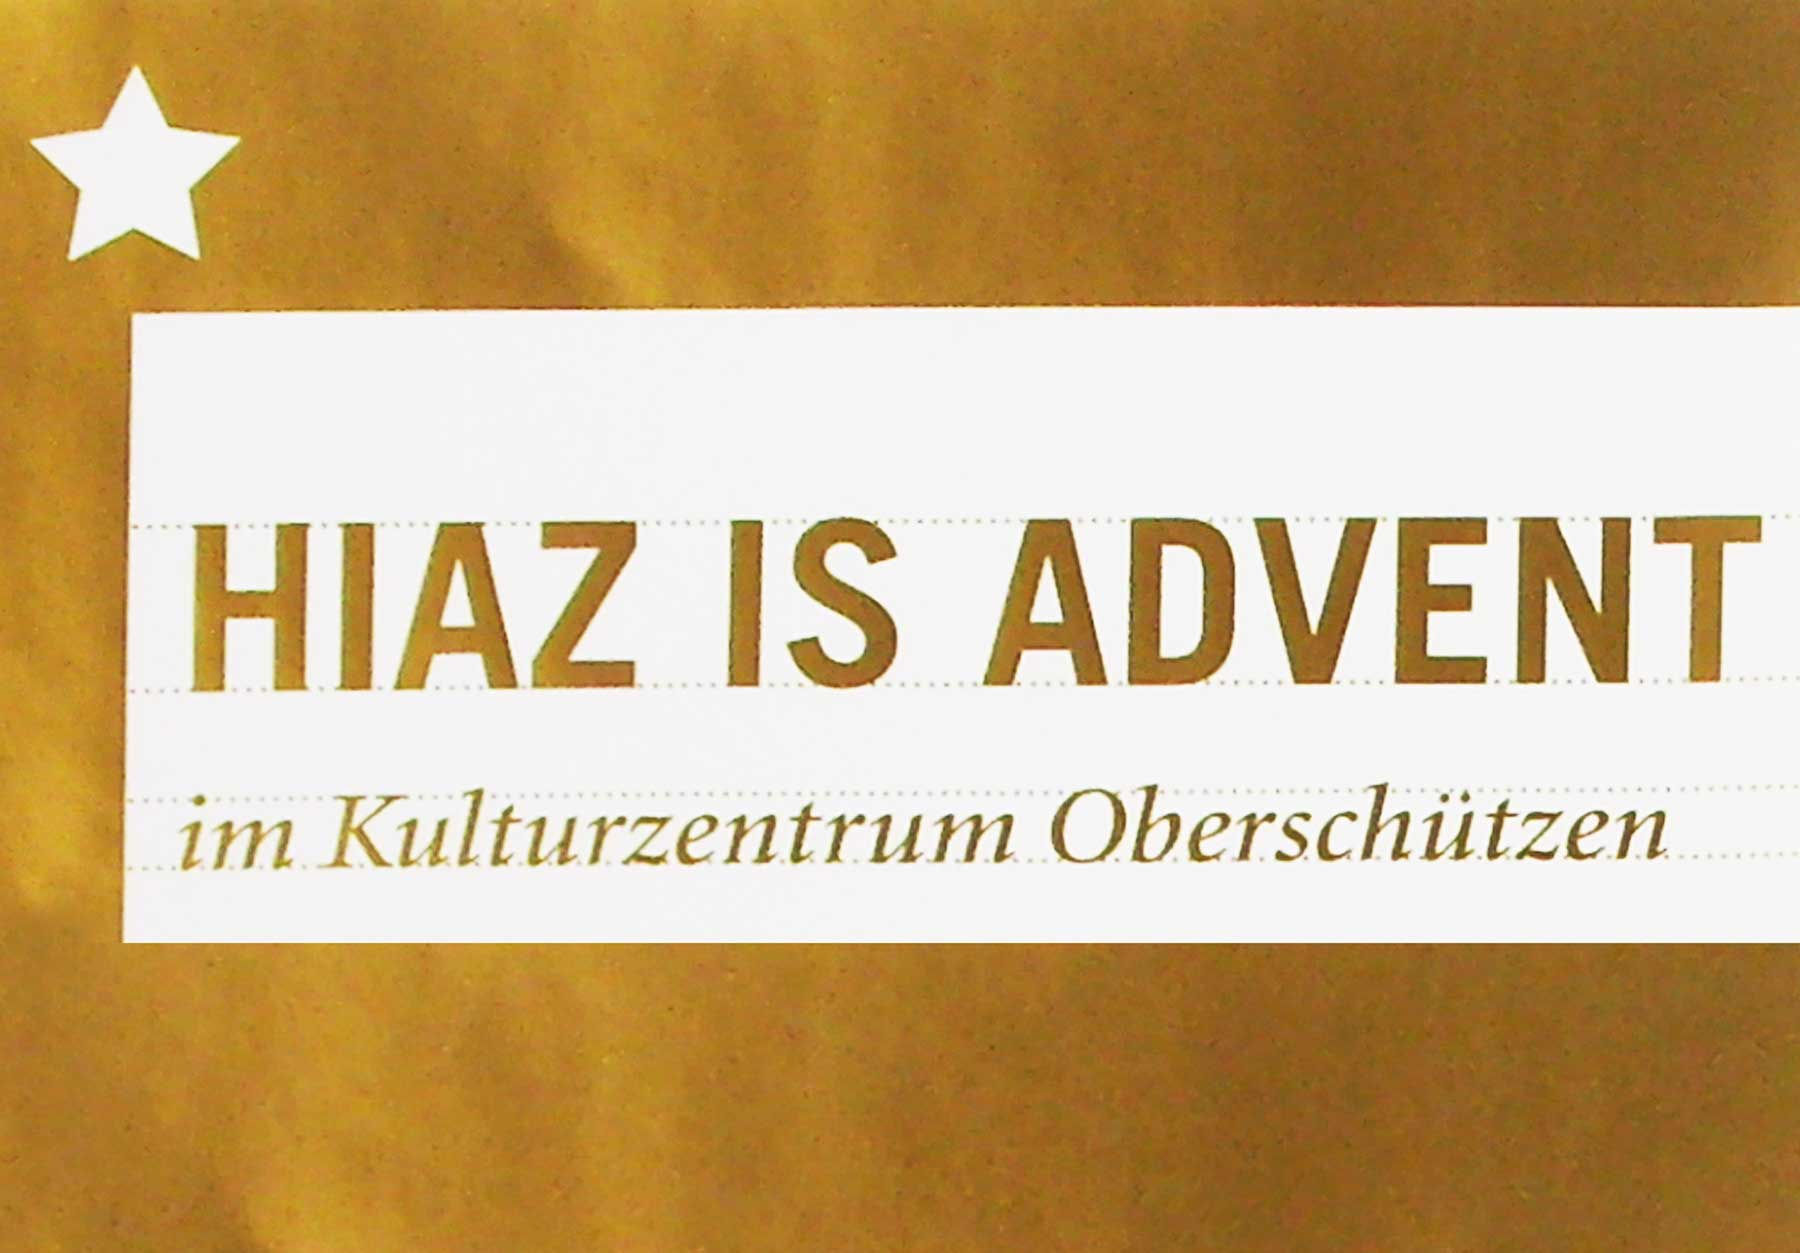 Hiaz is Advent